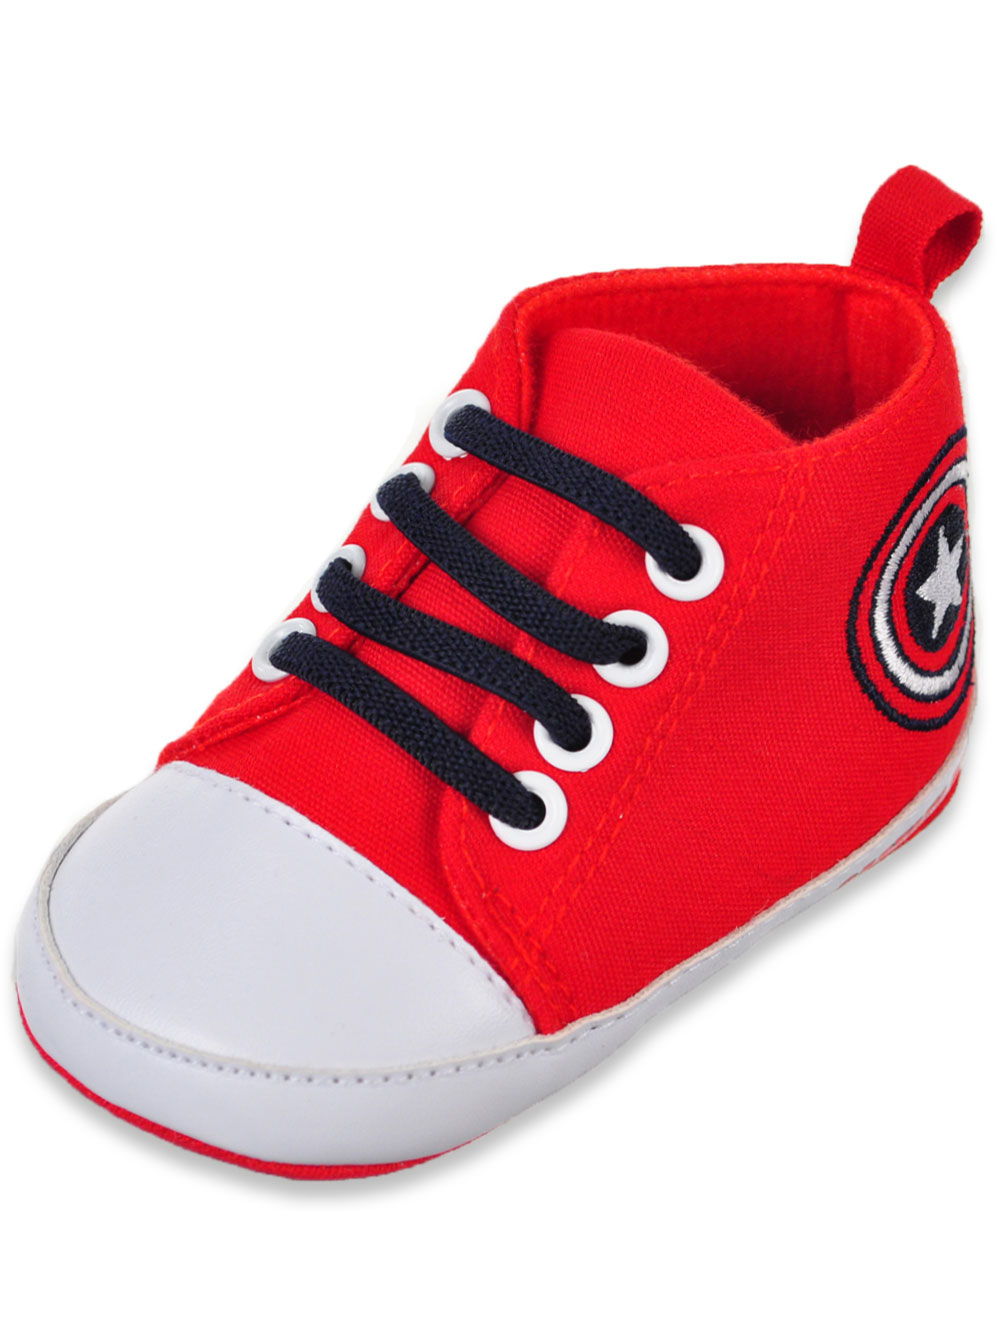 Boys Sneakers and Booties